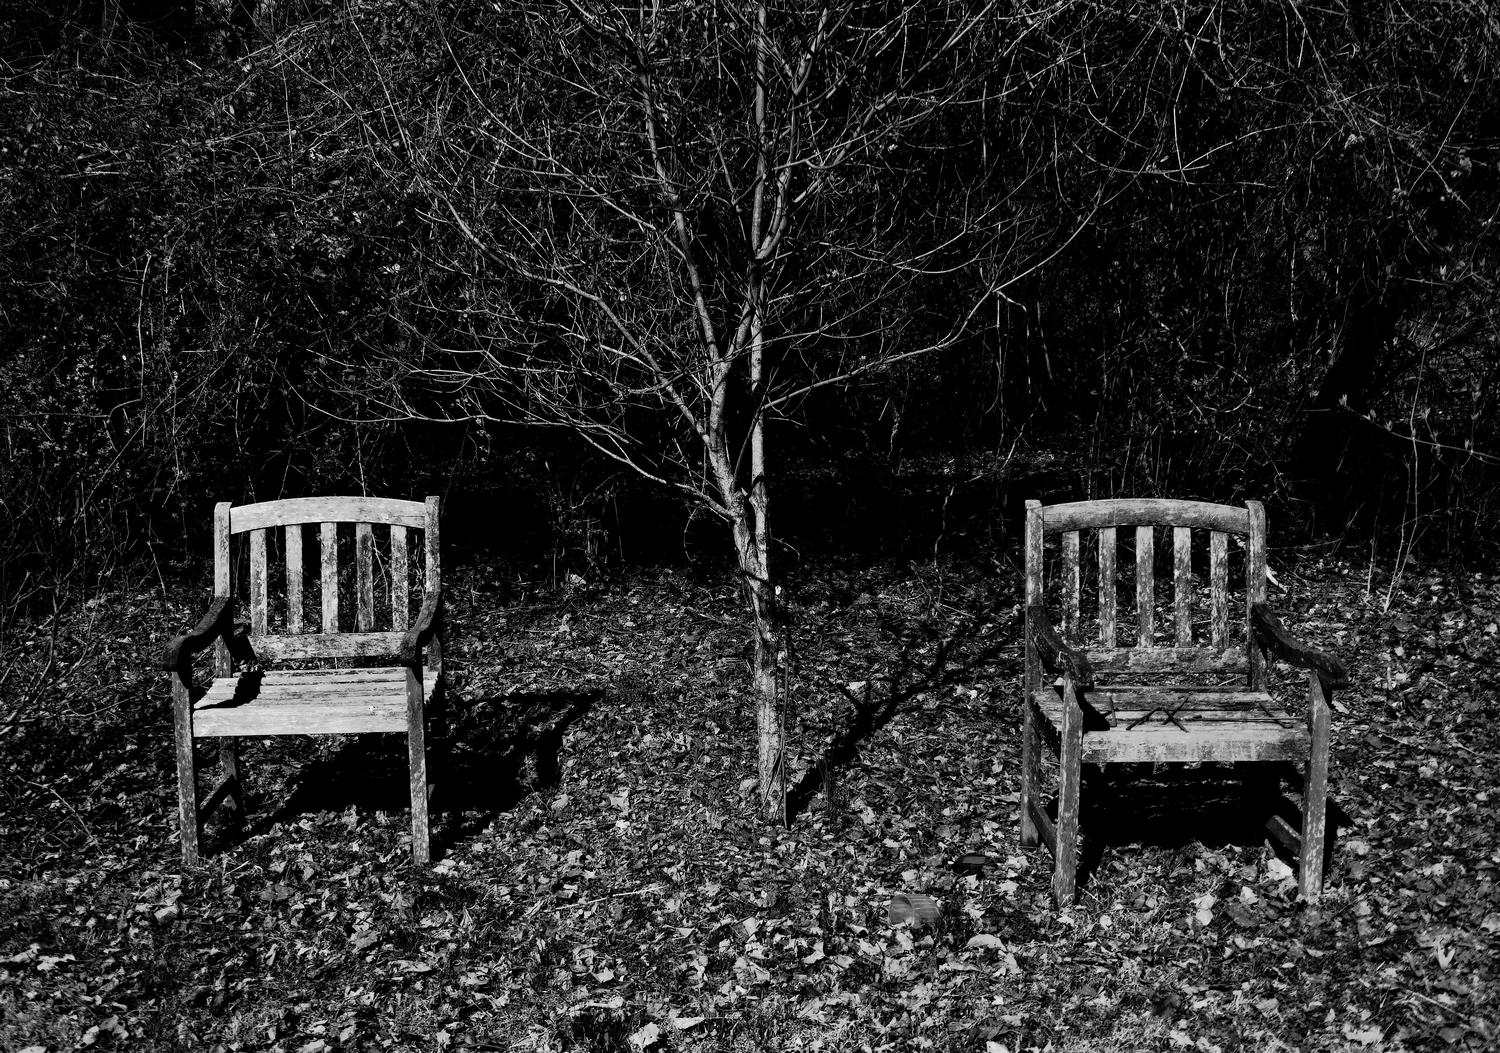 -  Chairs for two in a forgotten place. - Panasonic DMC-ZS40 - Panasonic DMC-TZ60 - - - art  - photography - by Tony Karp